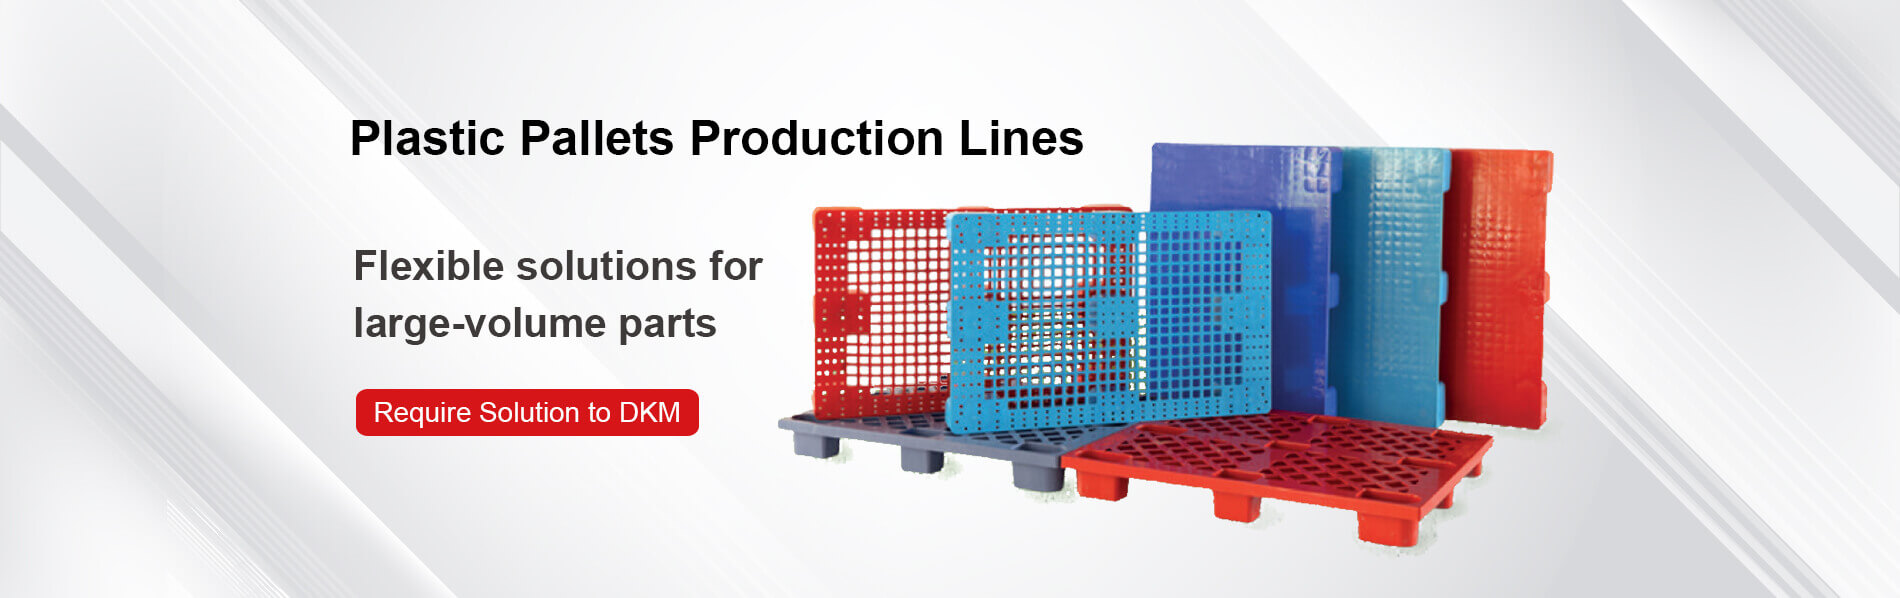 Plastic Pallets Production Lines